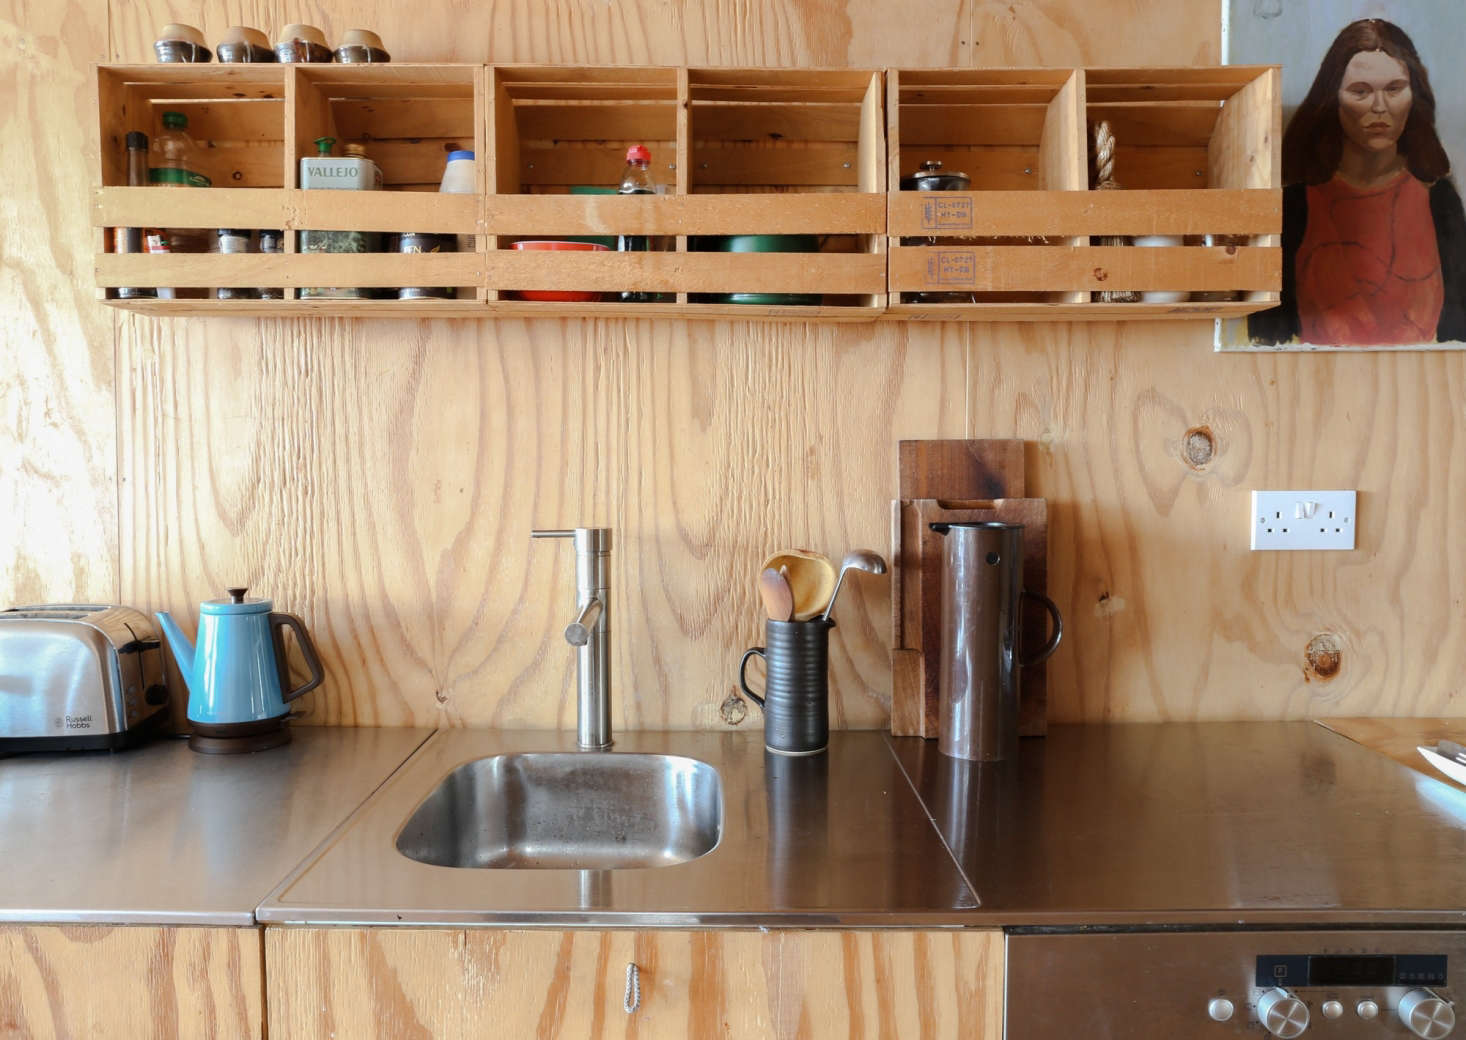 The couple rebuilt the kitchen using Ikea cabinets that they faced with plywood. The stainless steel counter and sink are also from Ikea.